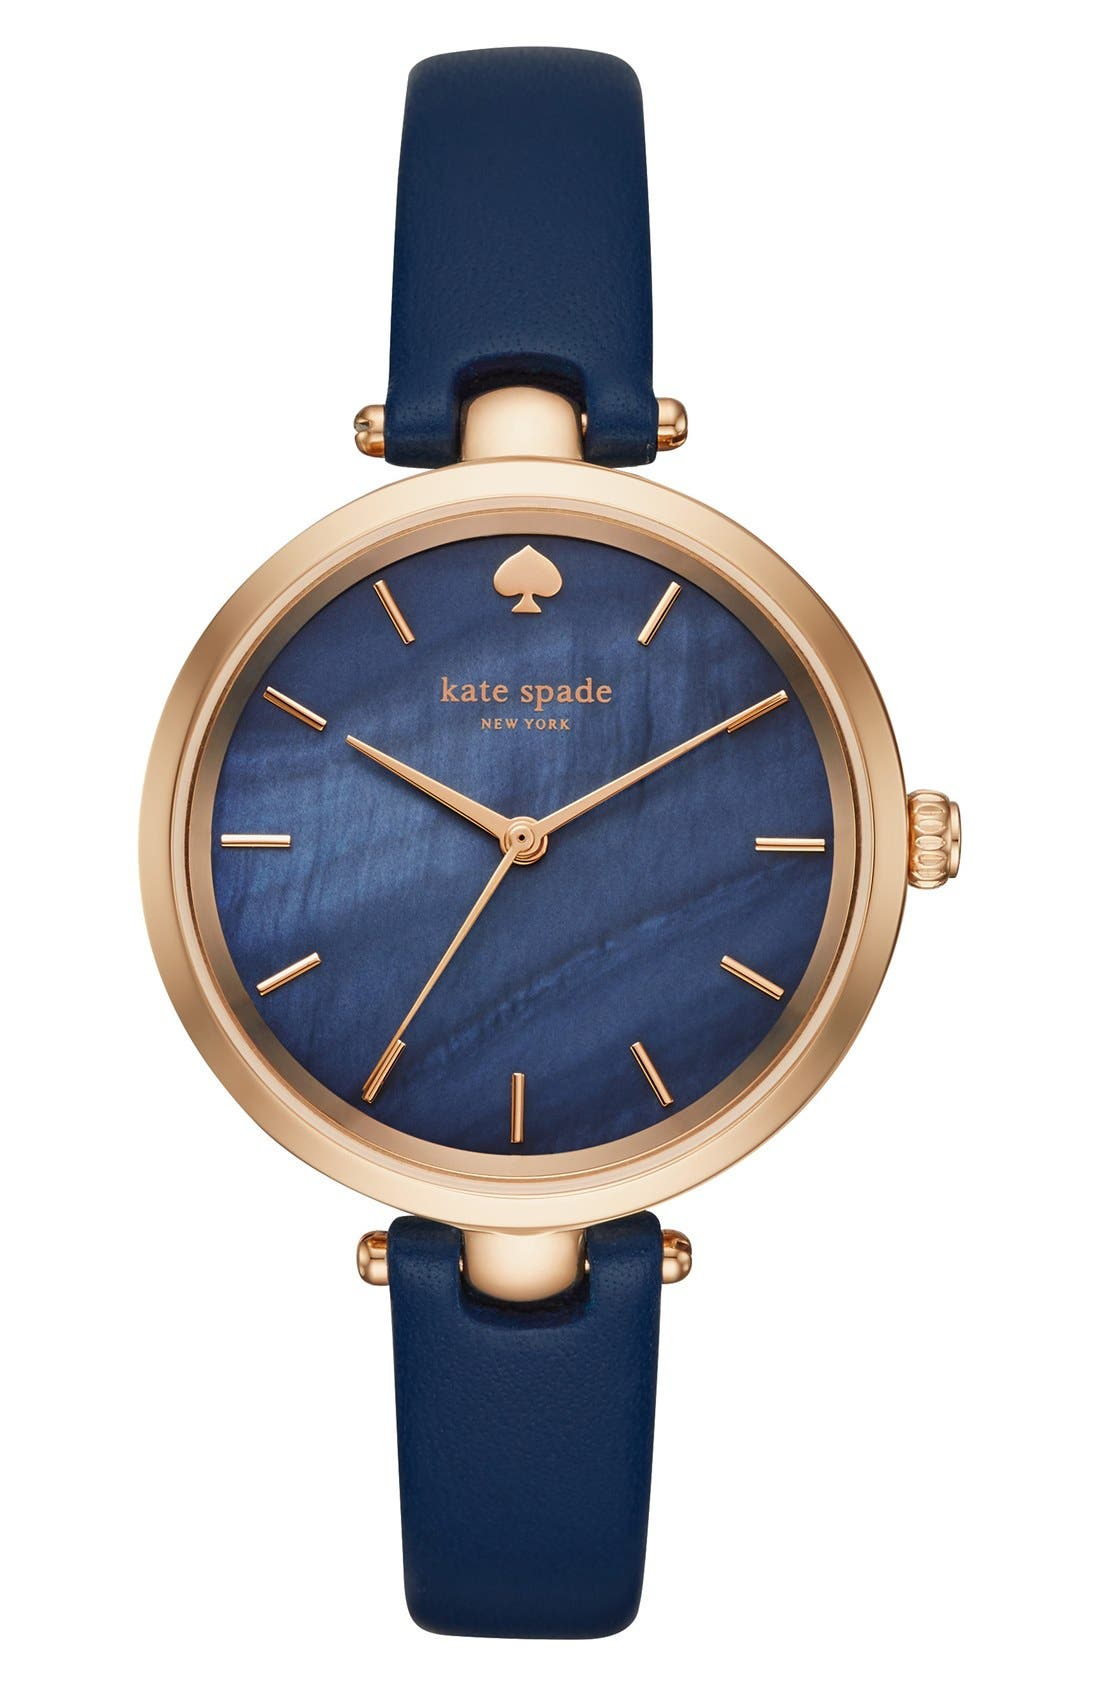 KATE SPADE NEW YORK, 'holland' round leather strap watch, 34mm, Main thumbnail 1, color, BLUE/ MOTHER OF PEARL